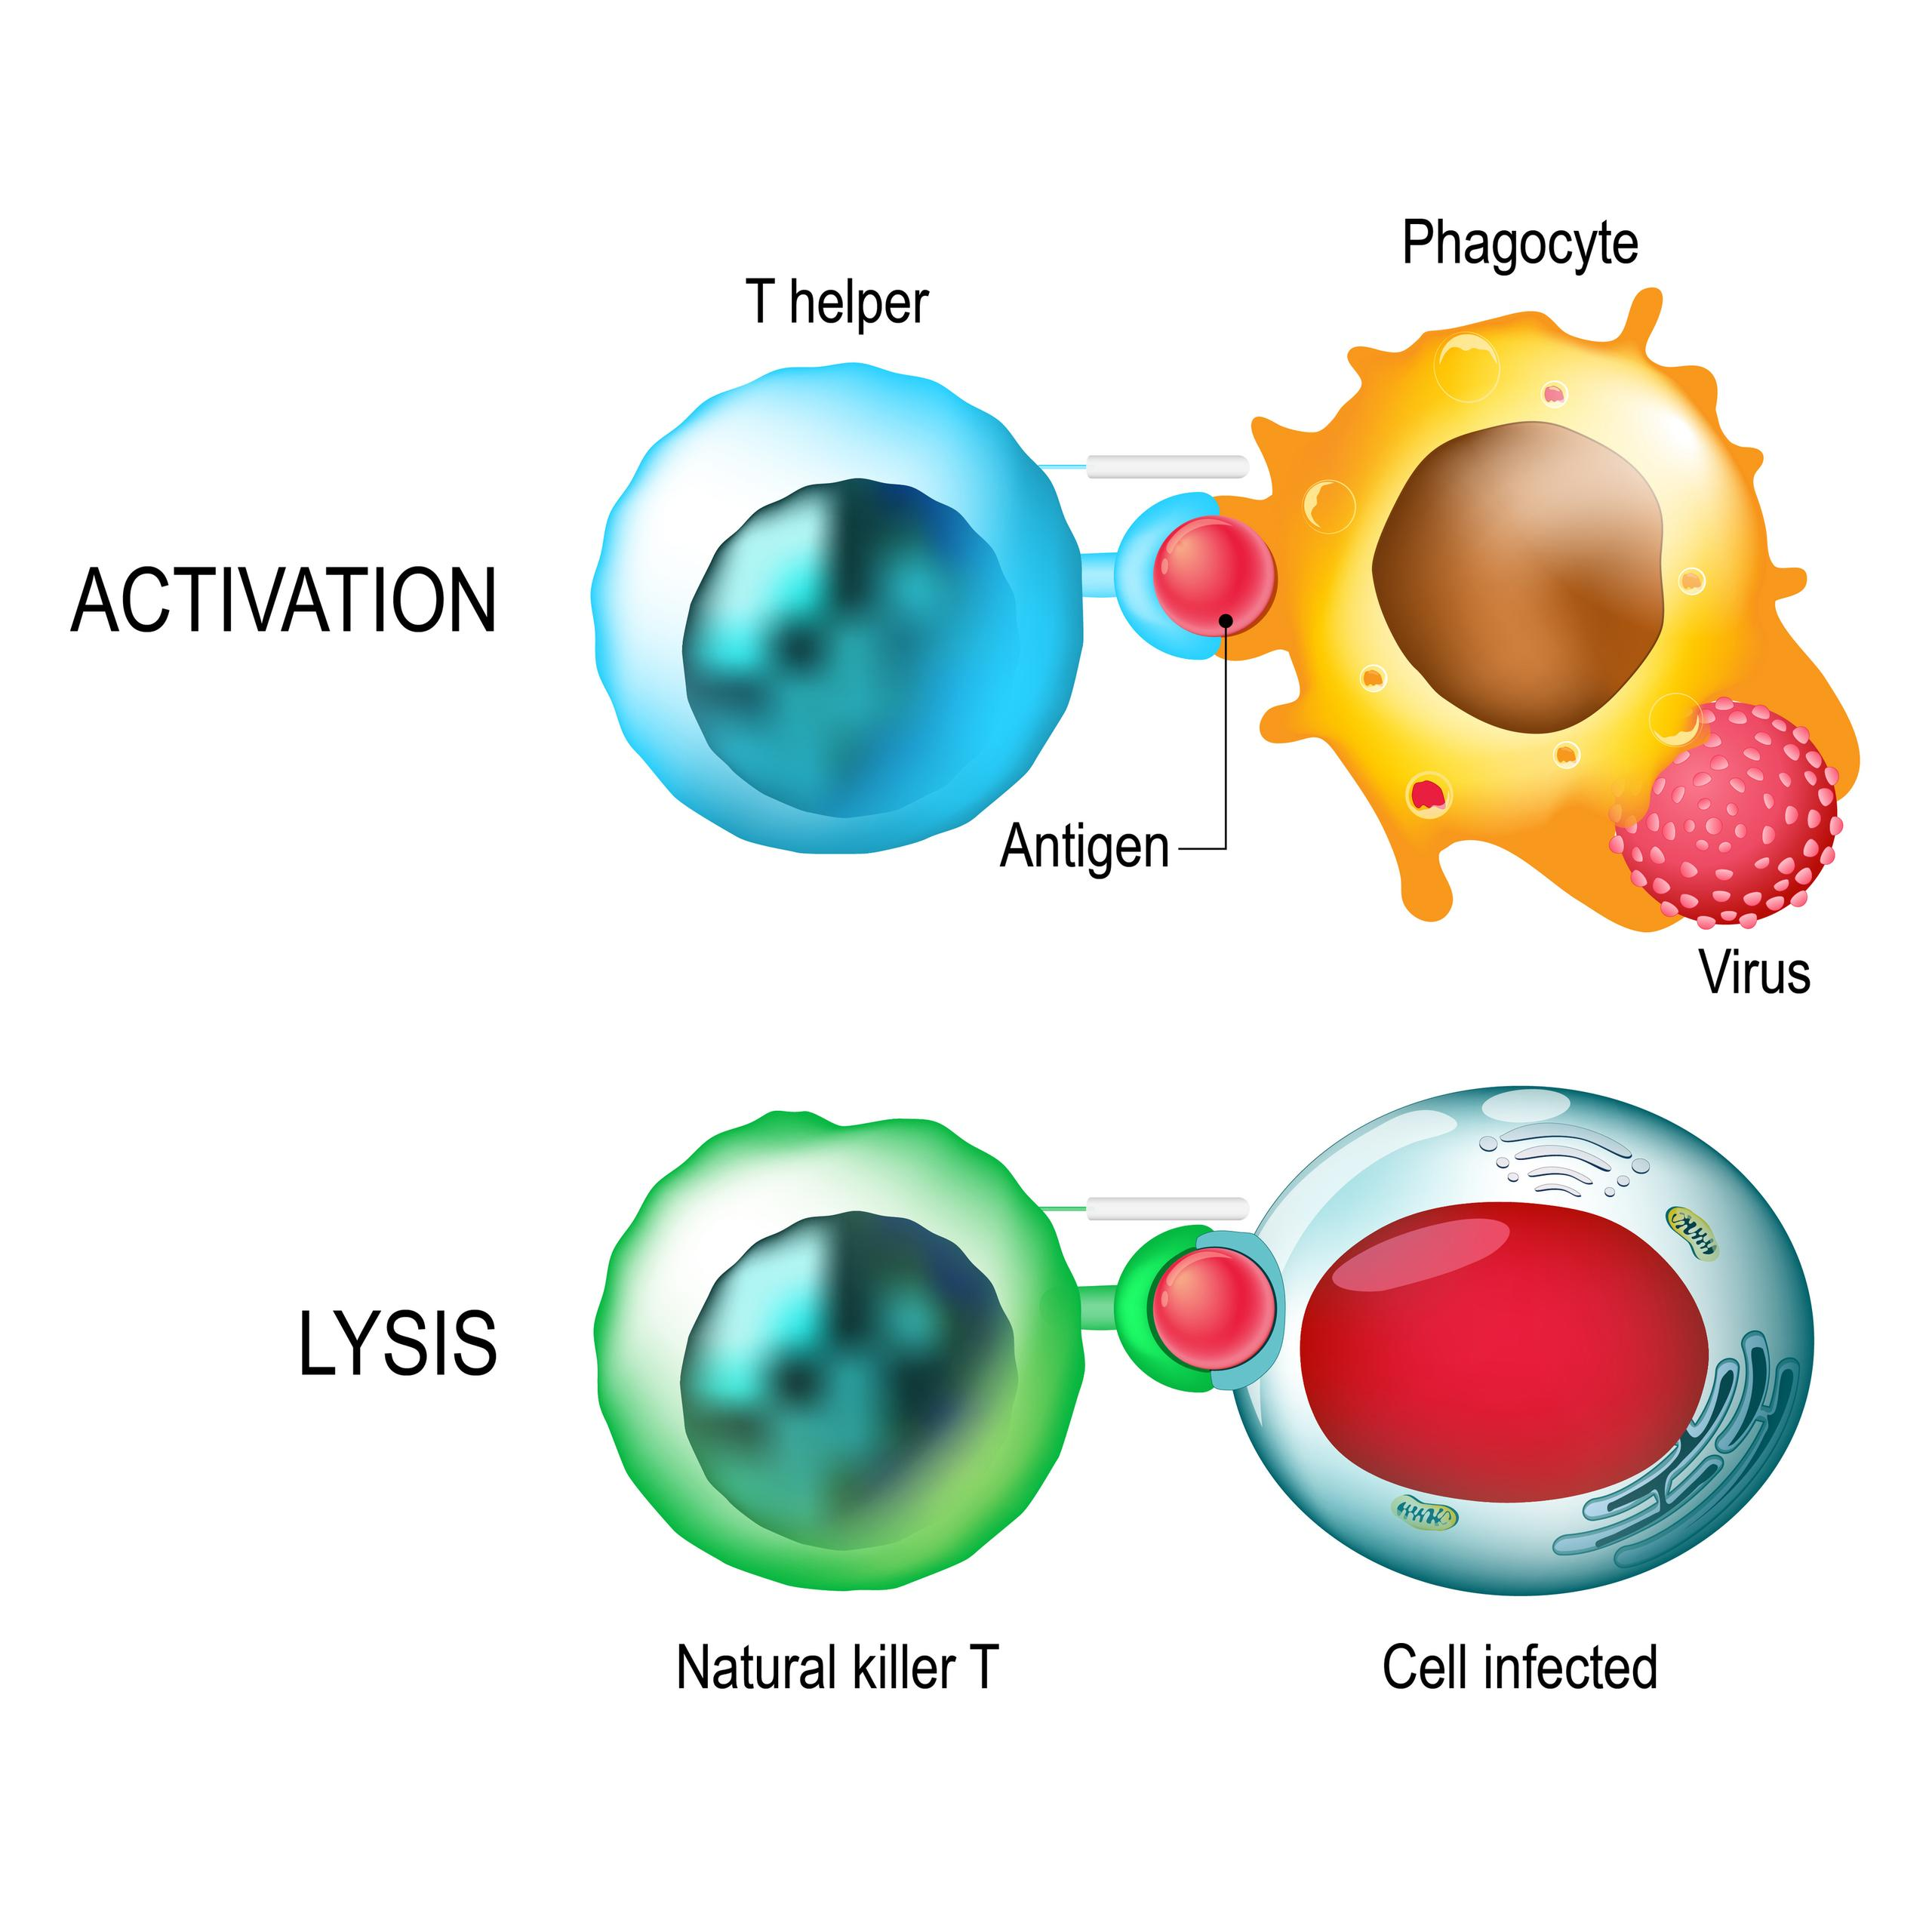 A T-cell encounters an antigen on the surface of an infected cell. T-cells direct and regulate immune responses and attack infected or cancerous cells.